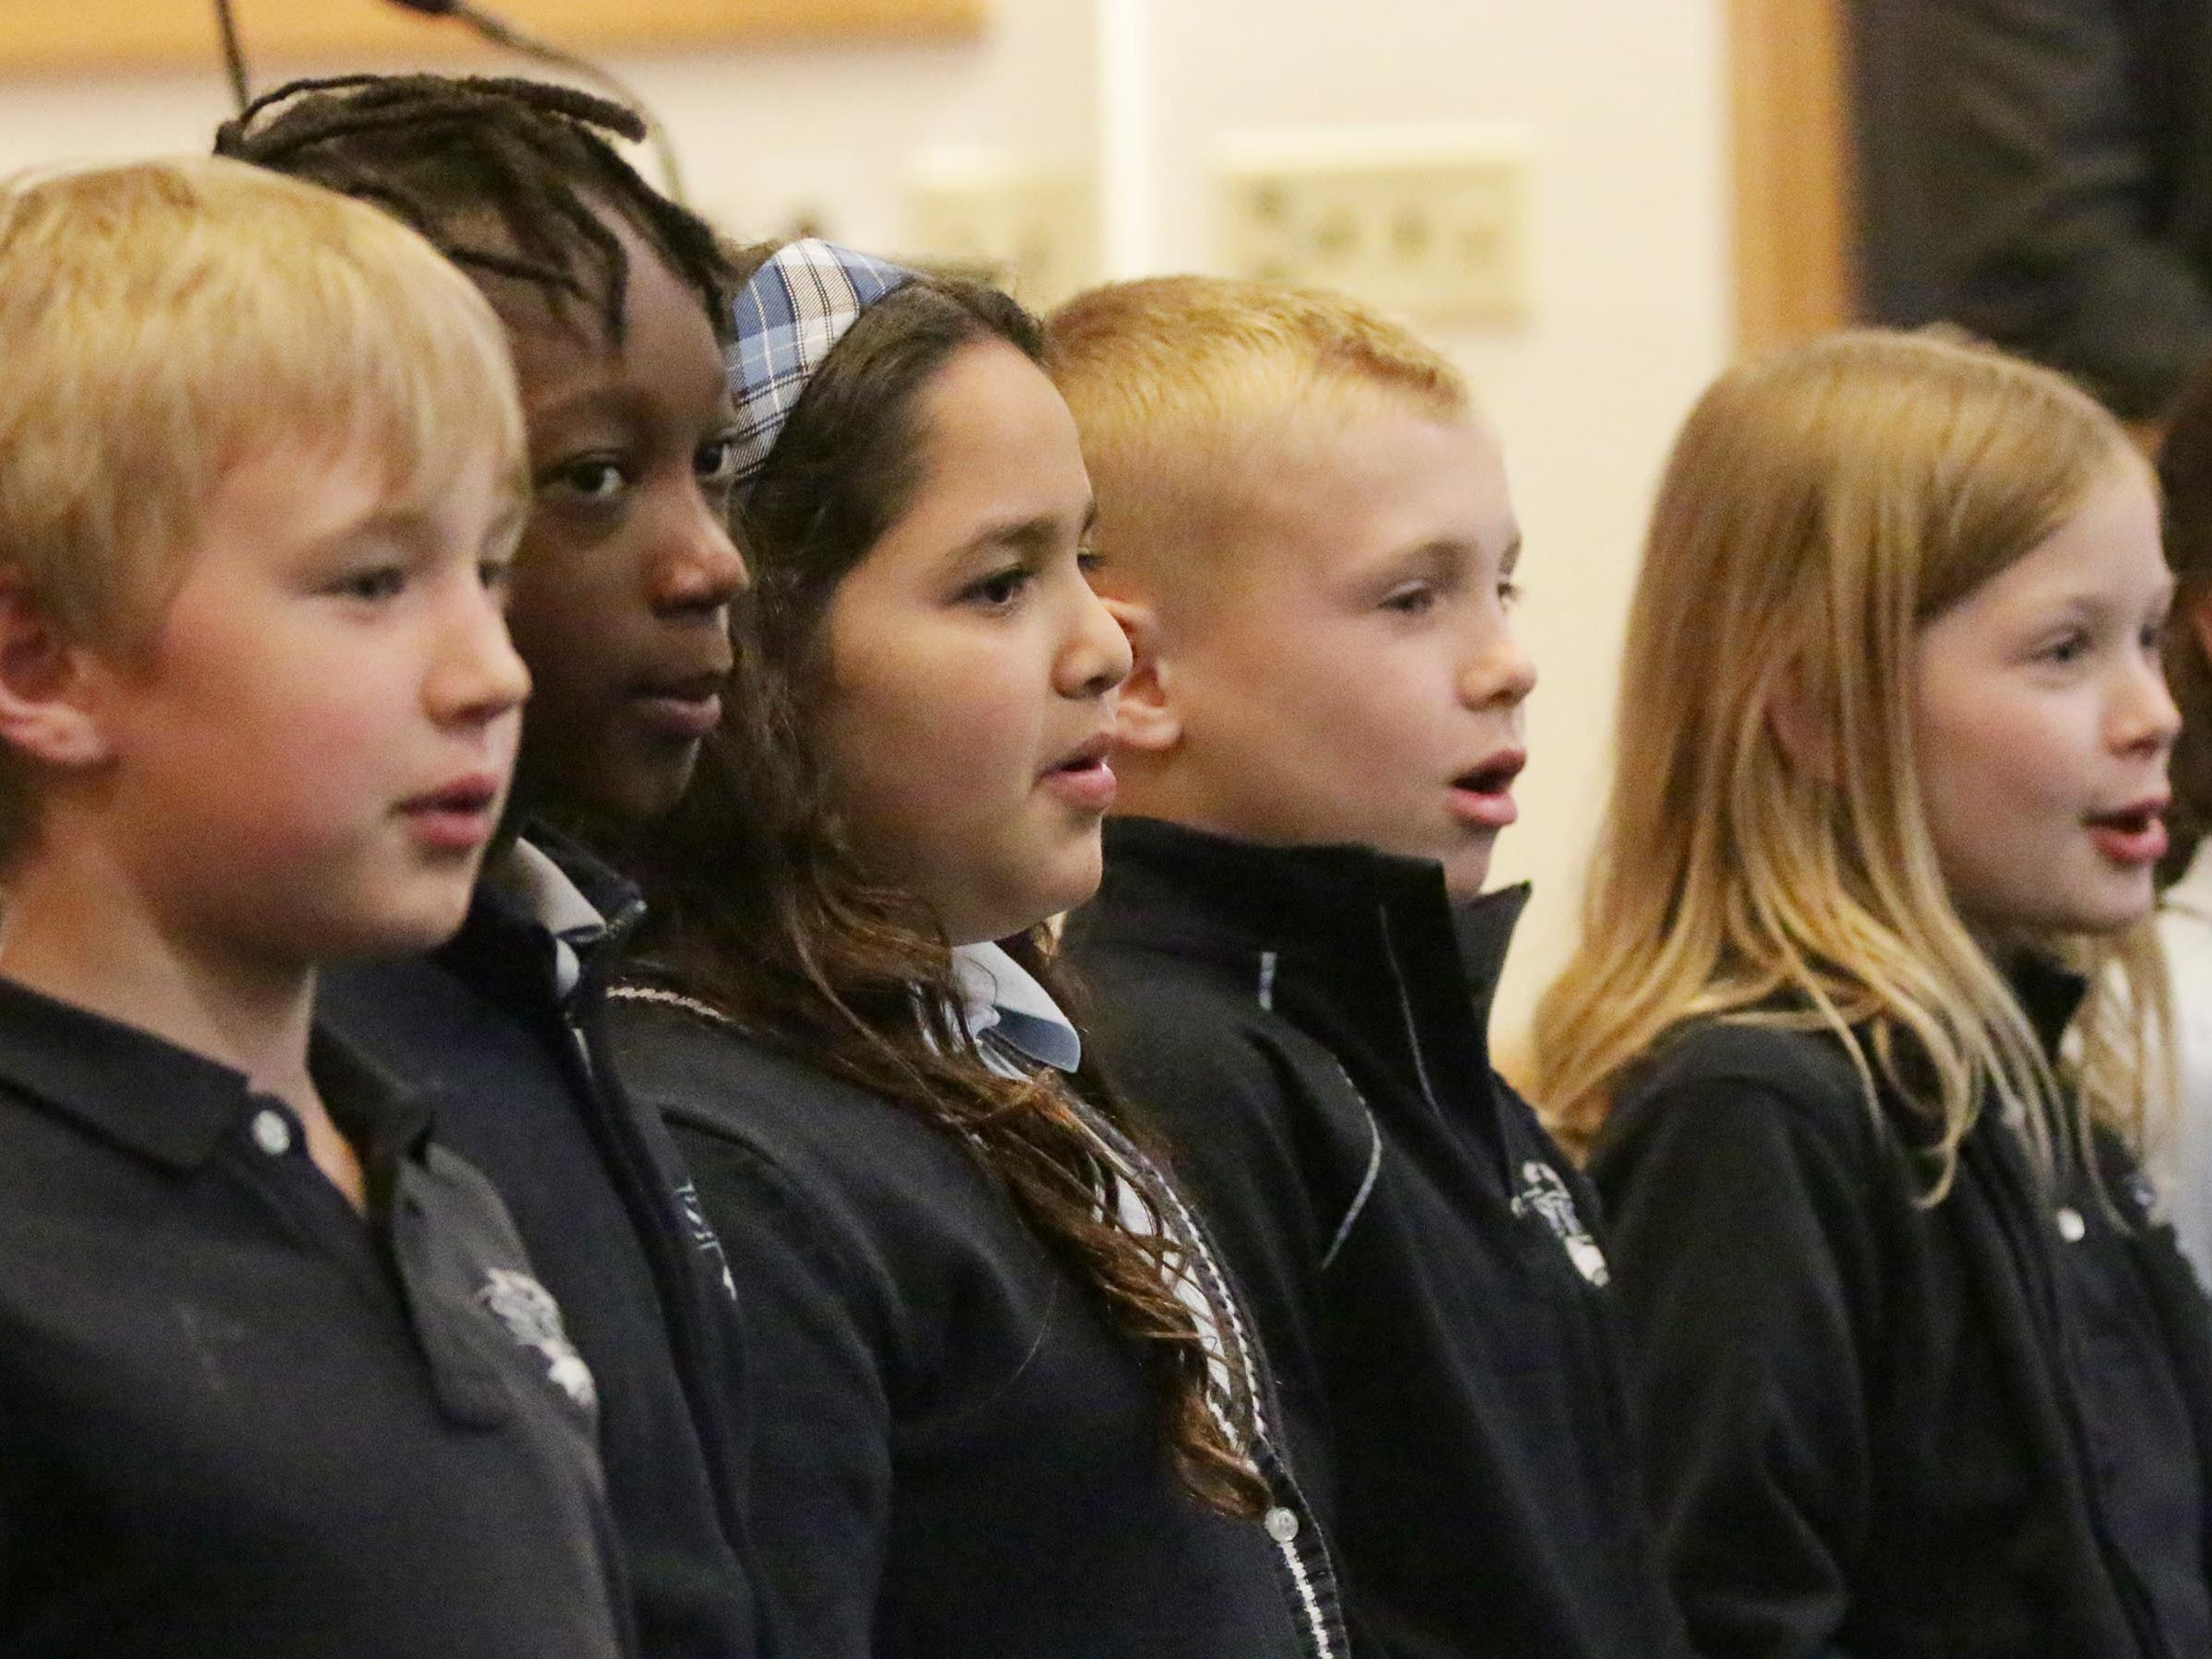 """Students from St. Elizabeth Ann Seton School sing """"God Bless America"""" during the National Day of Prayer service, Thursday, May 2, 2019, at Fountain Park Church, in Sheboygan, Wis."""